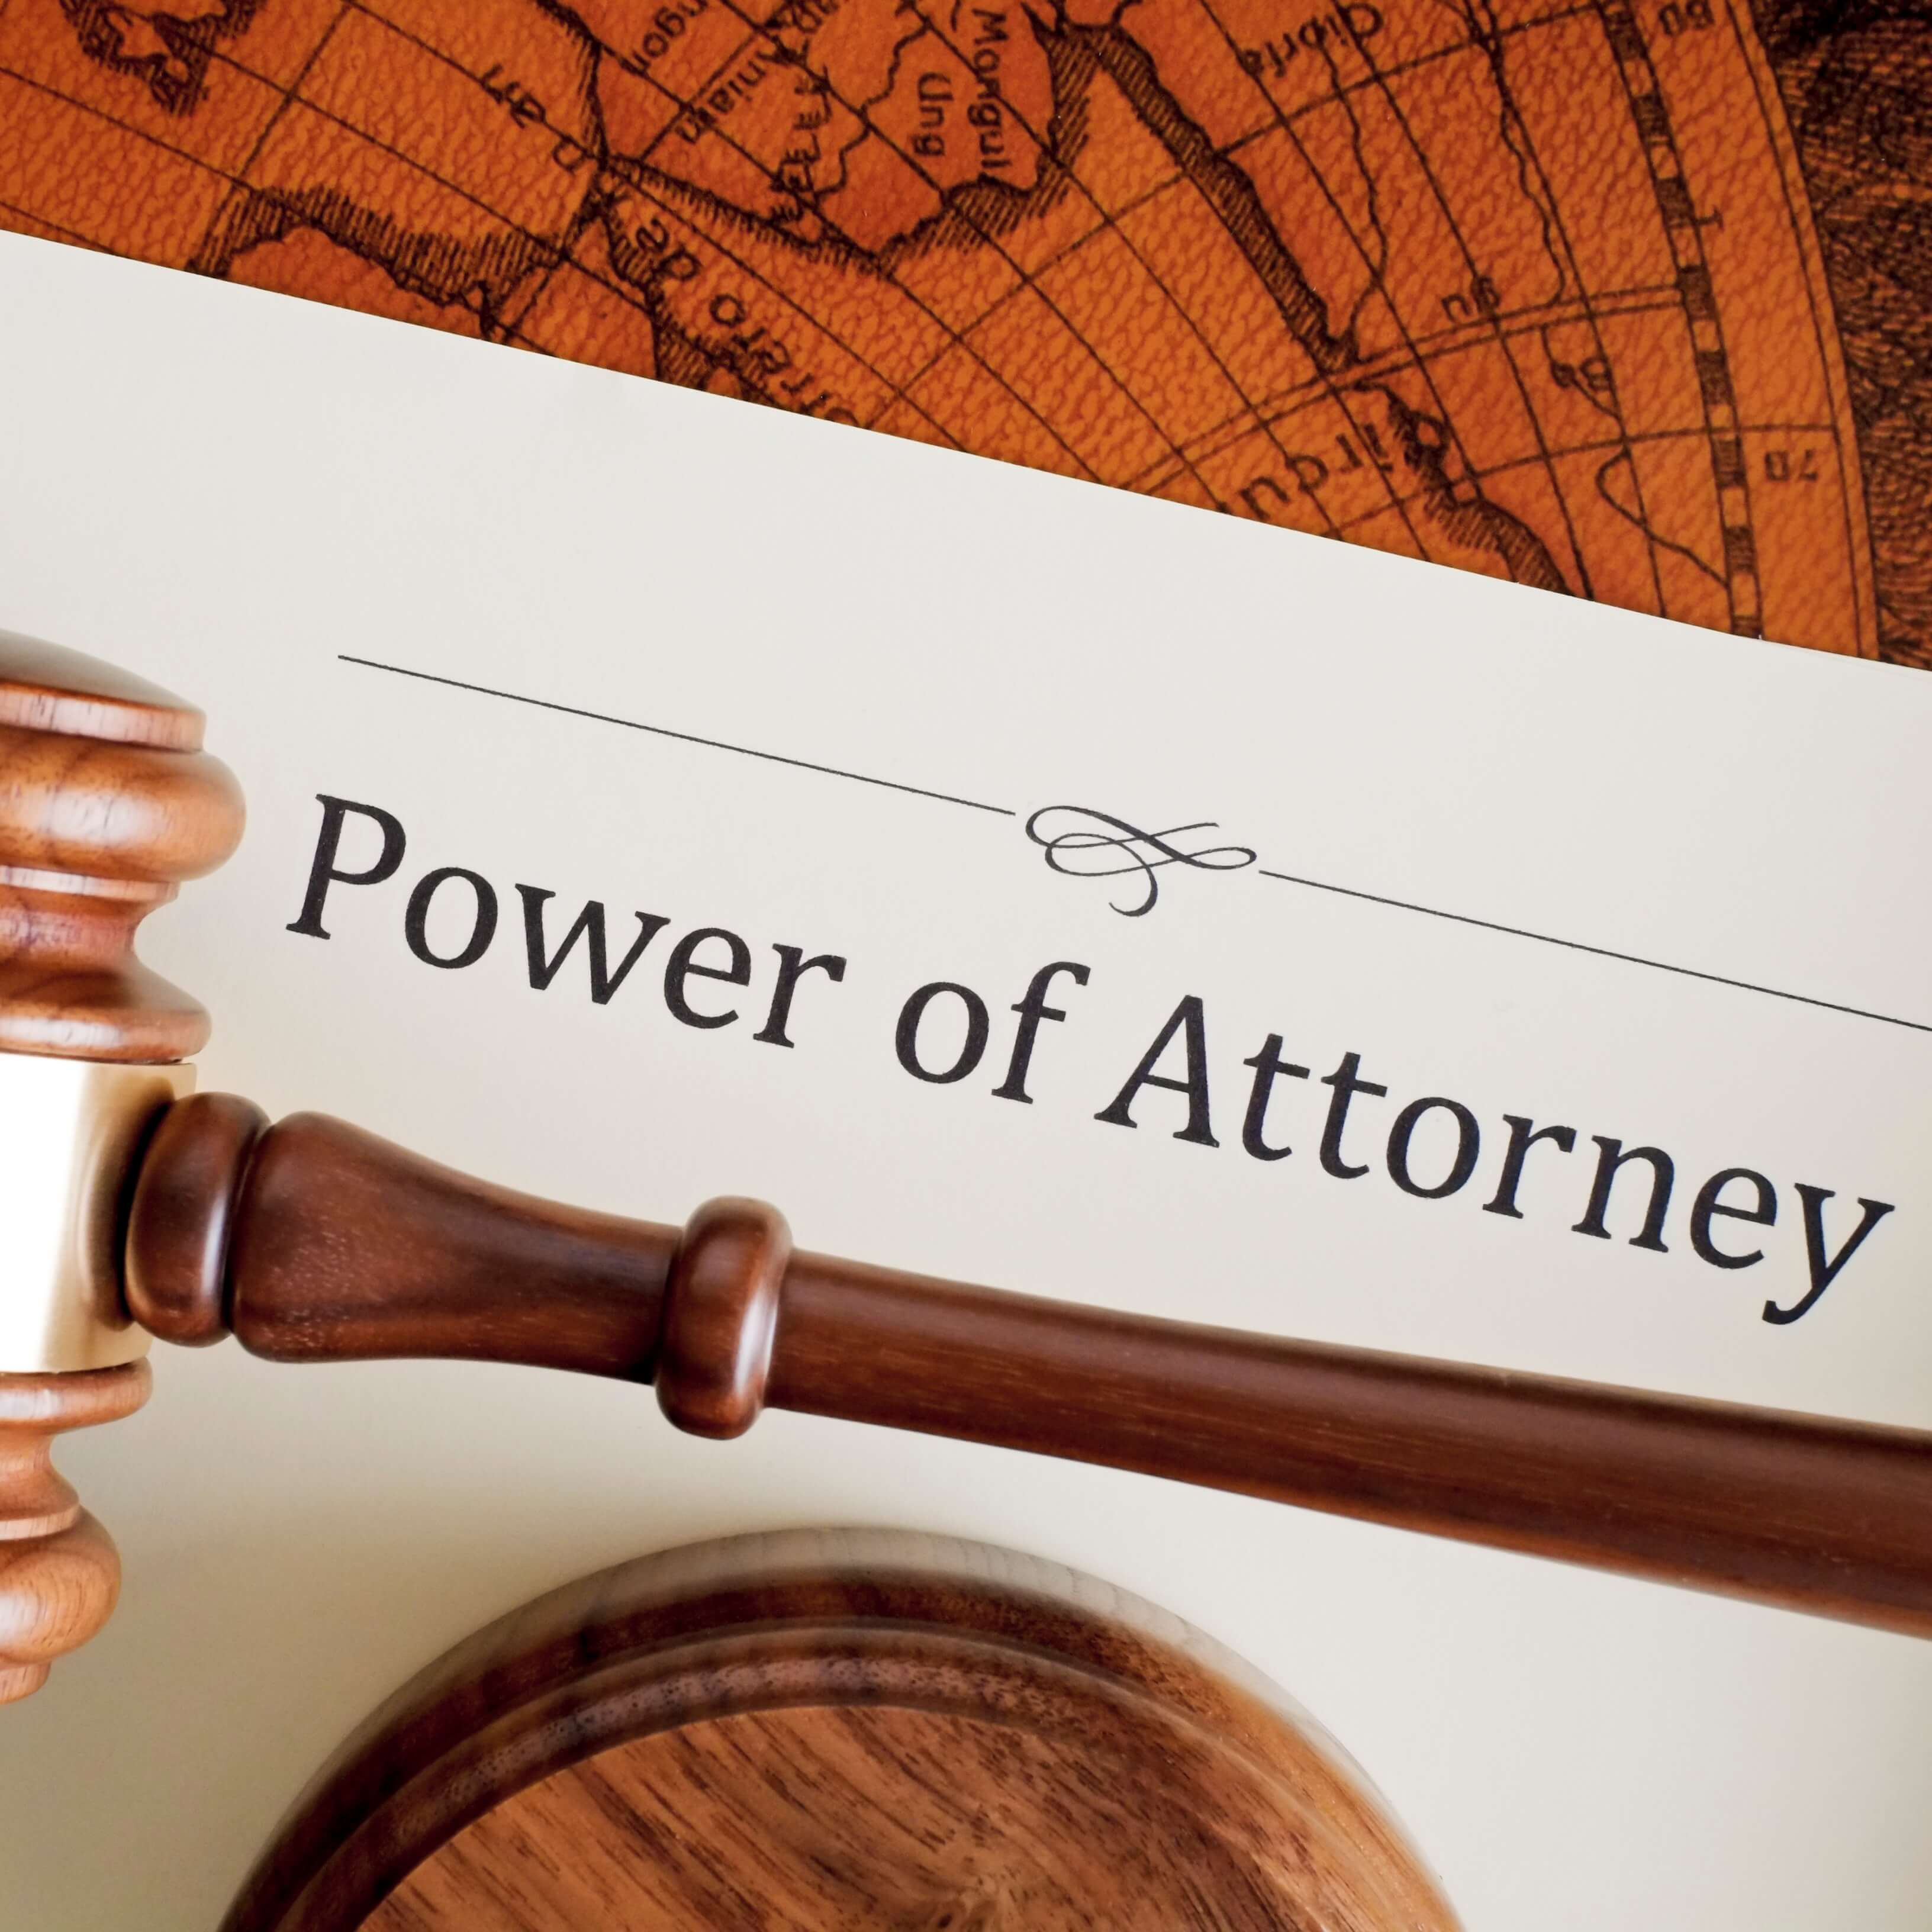 Power of Attorney on headed paper